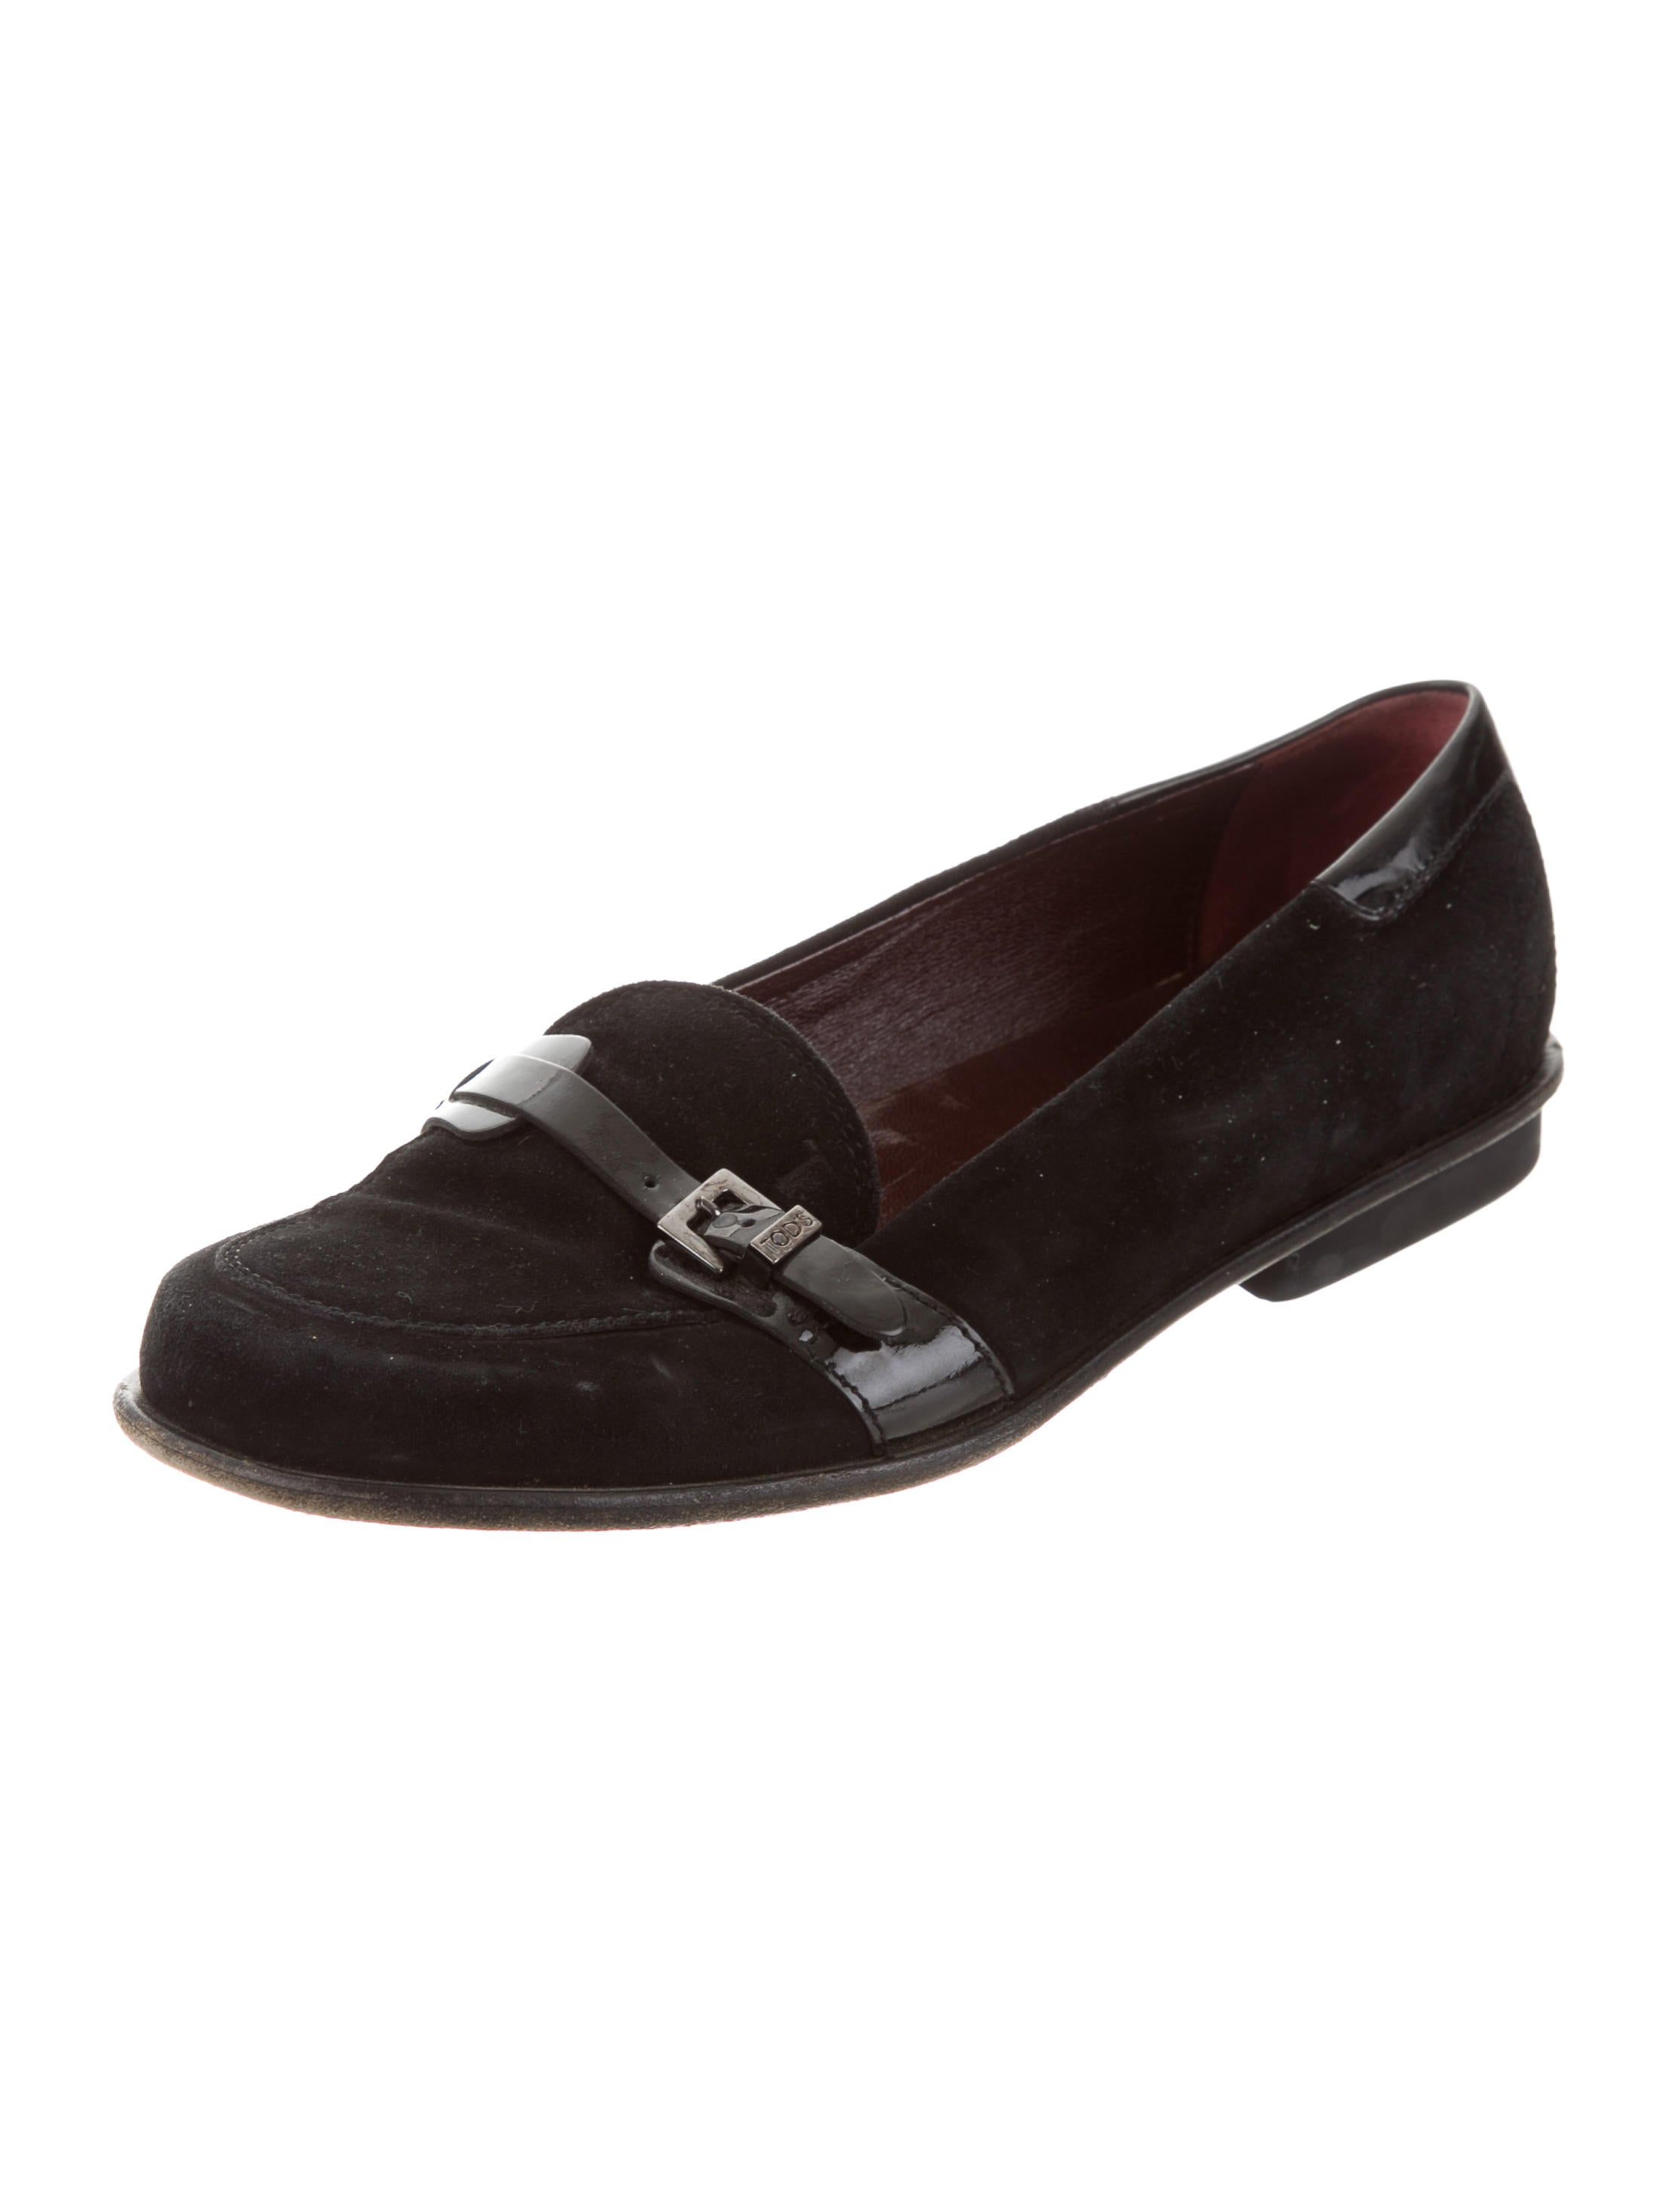 free shipping low price Tod's Suede Buckle-Accented Loafers buy cheap sale cost cheap online sneakernews cheap online Inexpensive for sale fpc27636rb